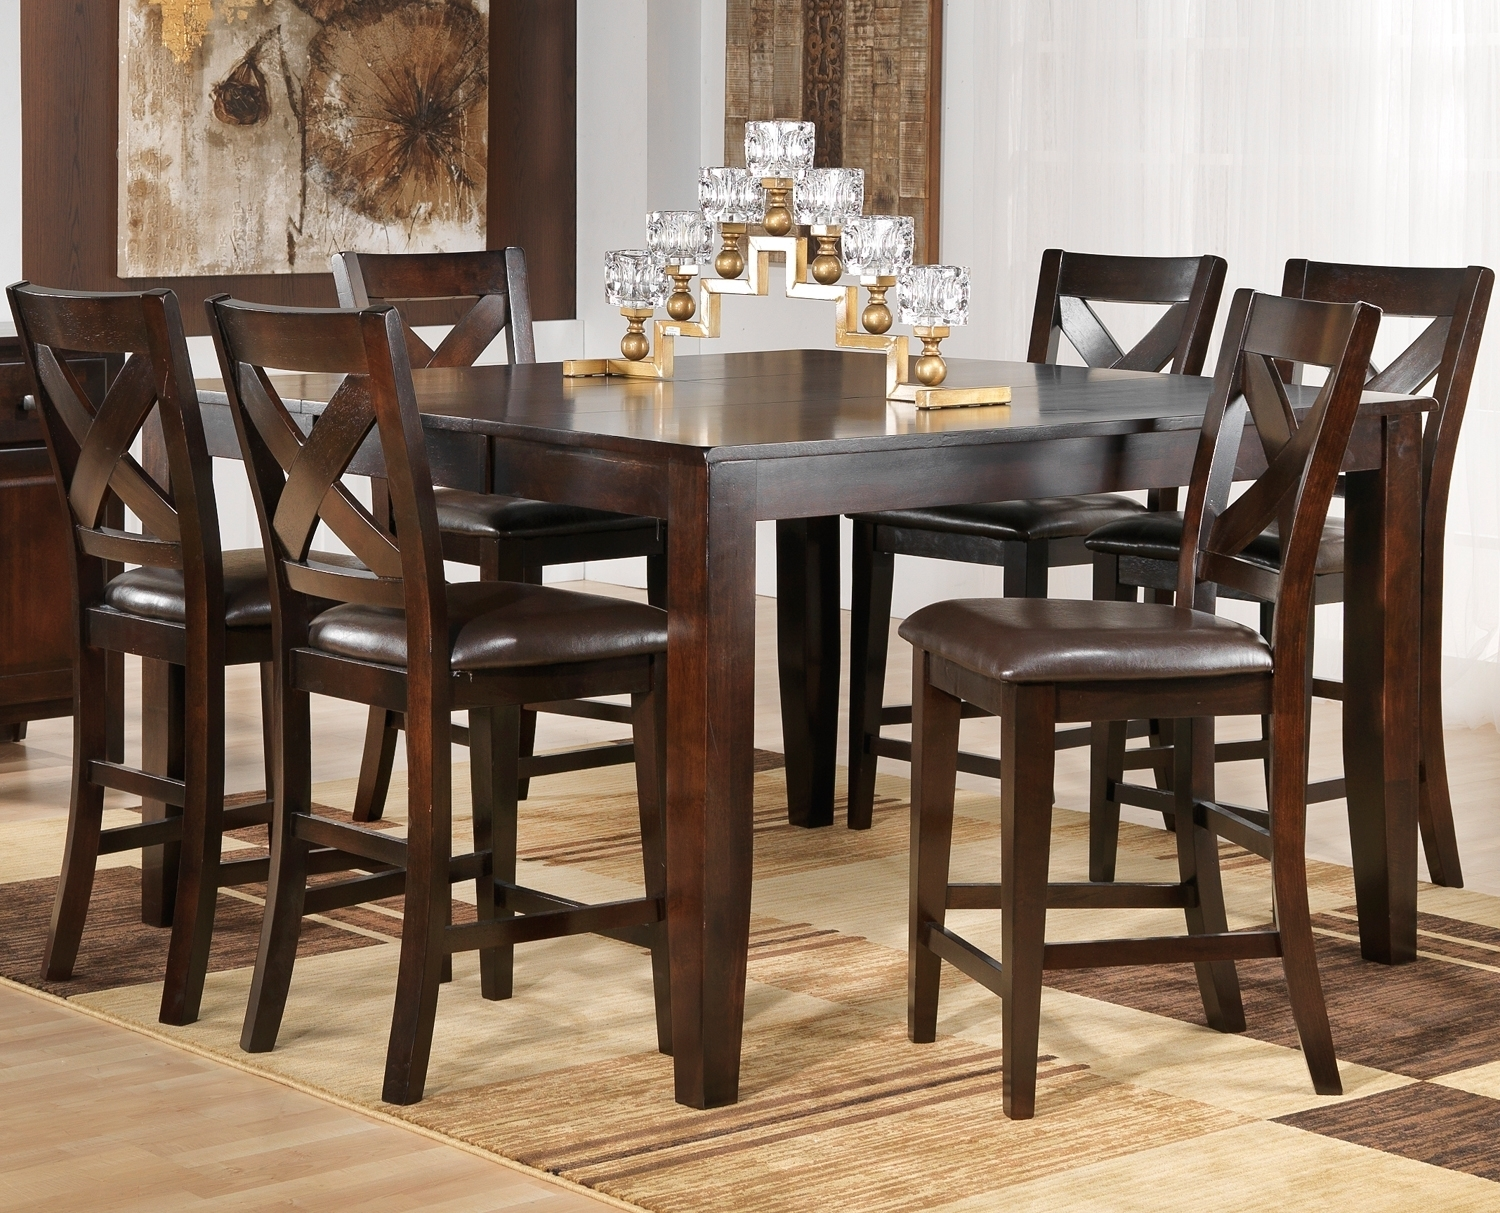 Pub Dining Table And Its Benefits – Home Decor Ideas In Most Recently Released Leon Dining Tables (Image 17 of 20)